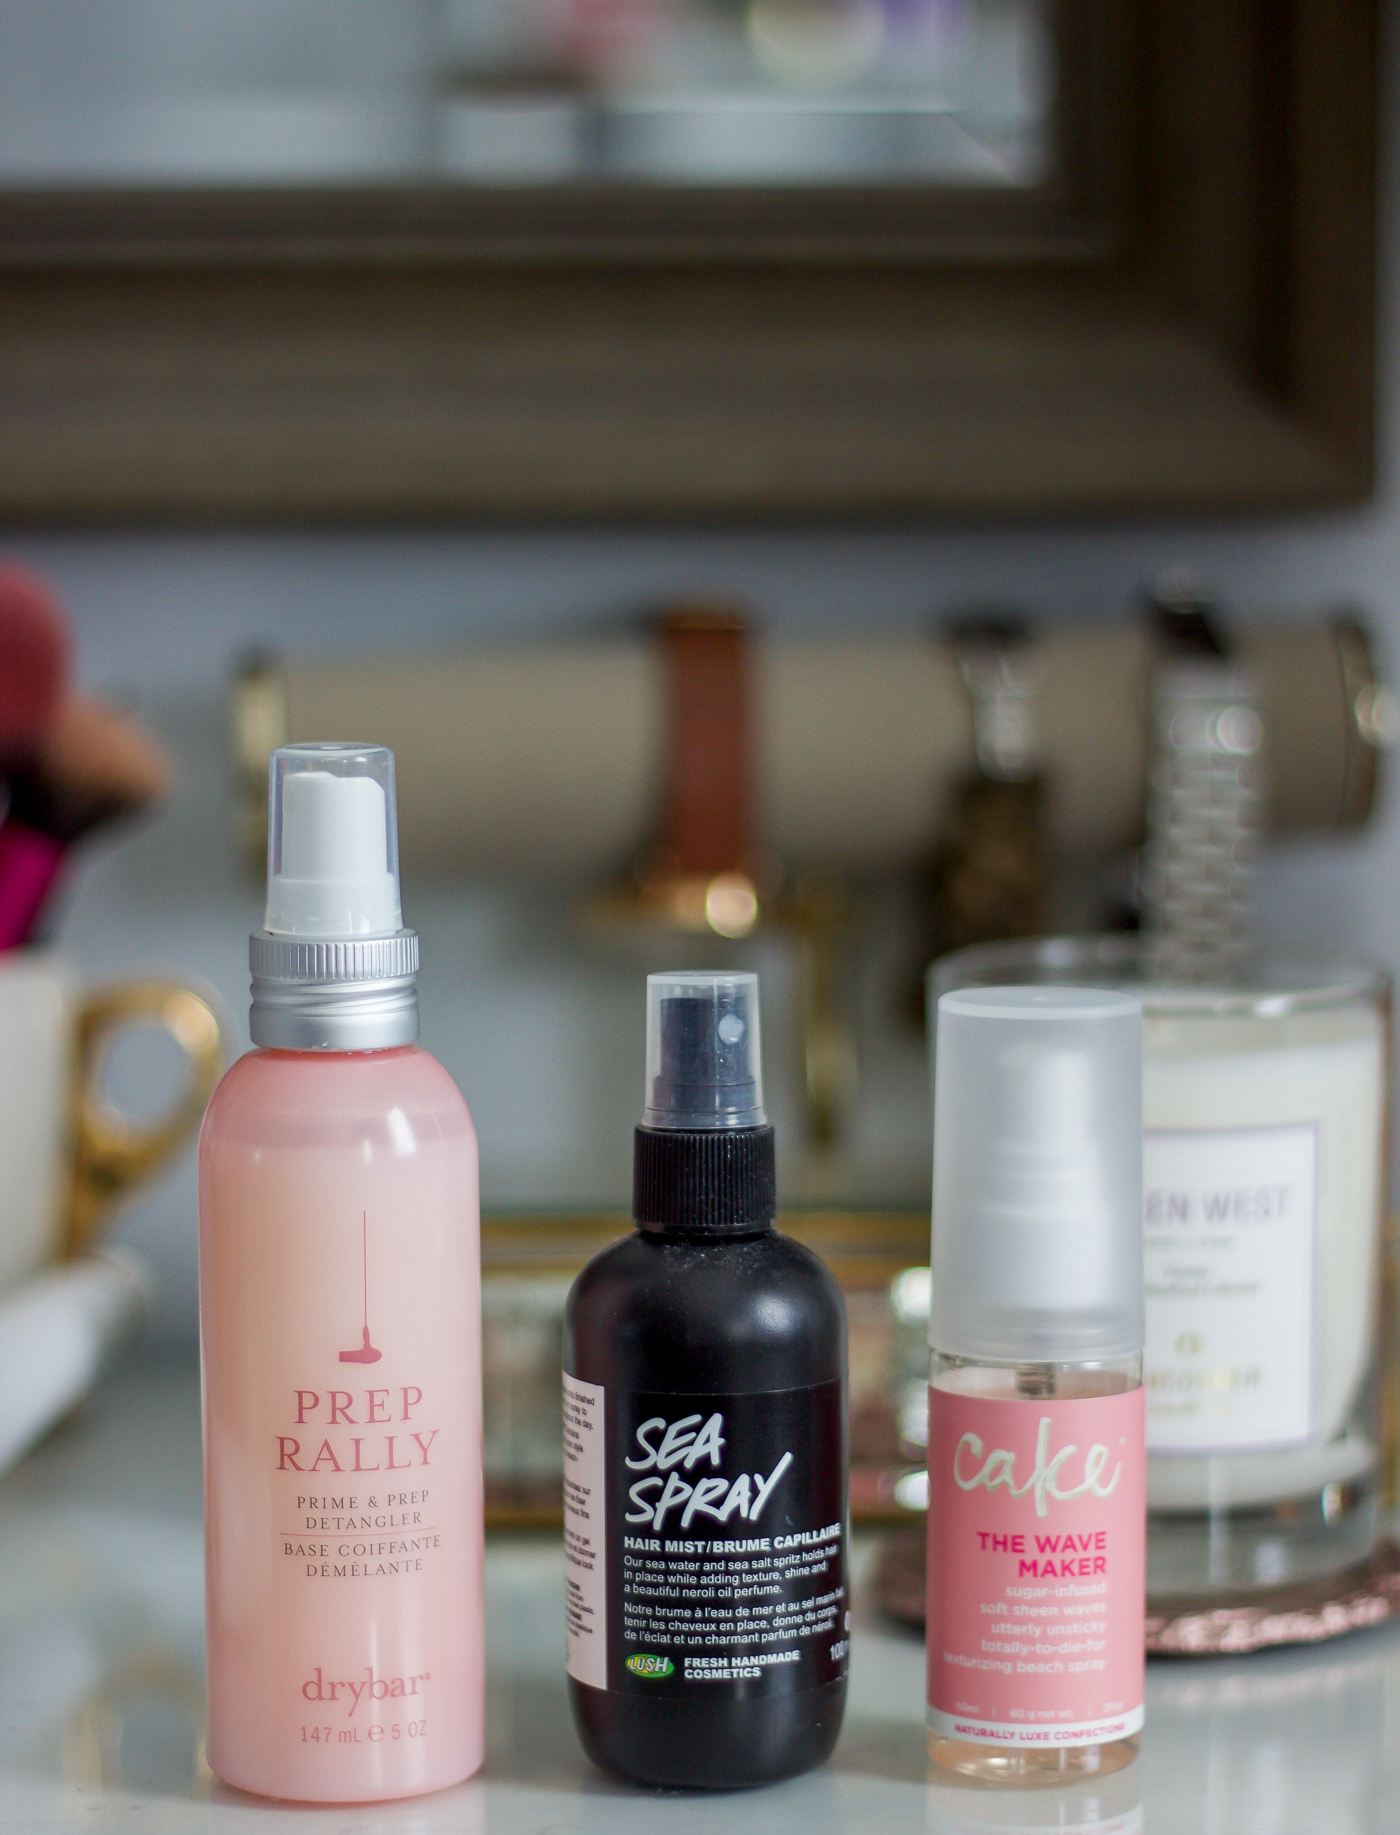 Some of the best hair styling products for thin, fine hair from Dry Bar, LUSH and Cake Beauty